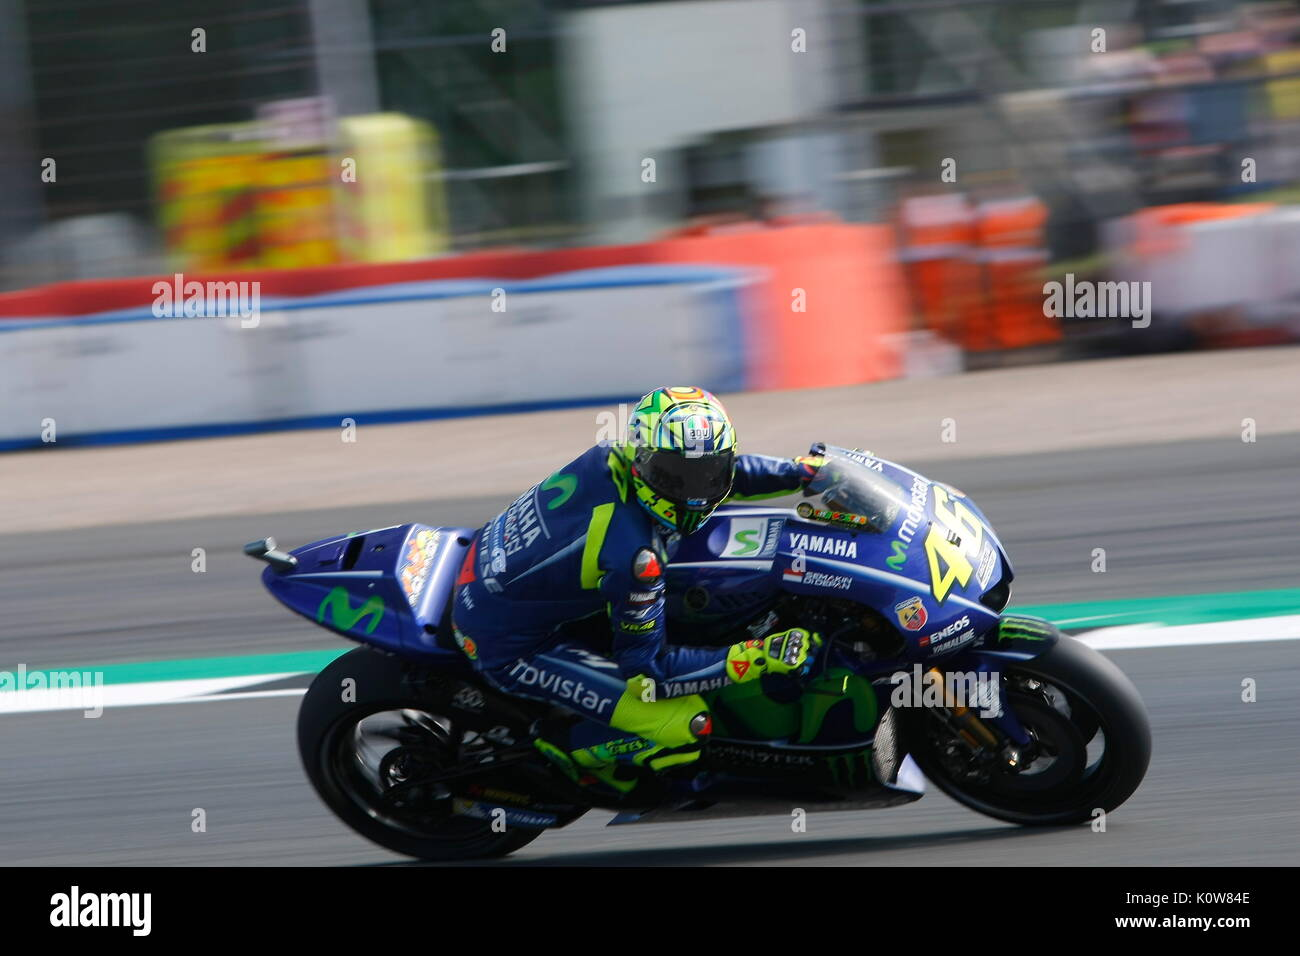 Silverstone, 25th August, 2017 The GOAT (Greatest of all Time) corners at speed on his Yamaha  at the OCTO British MotoGPSilverstone, 25th August, 2017   during the OCTO British MotoGP weekend - Stock Image